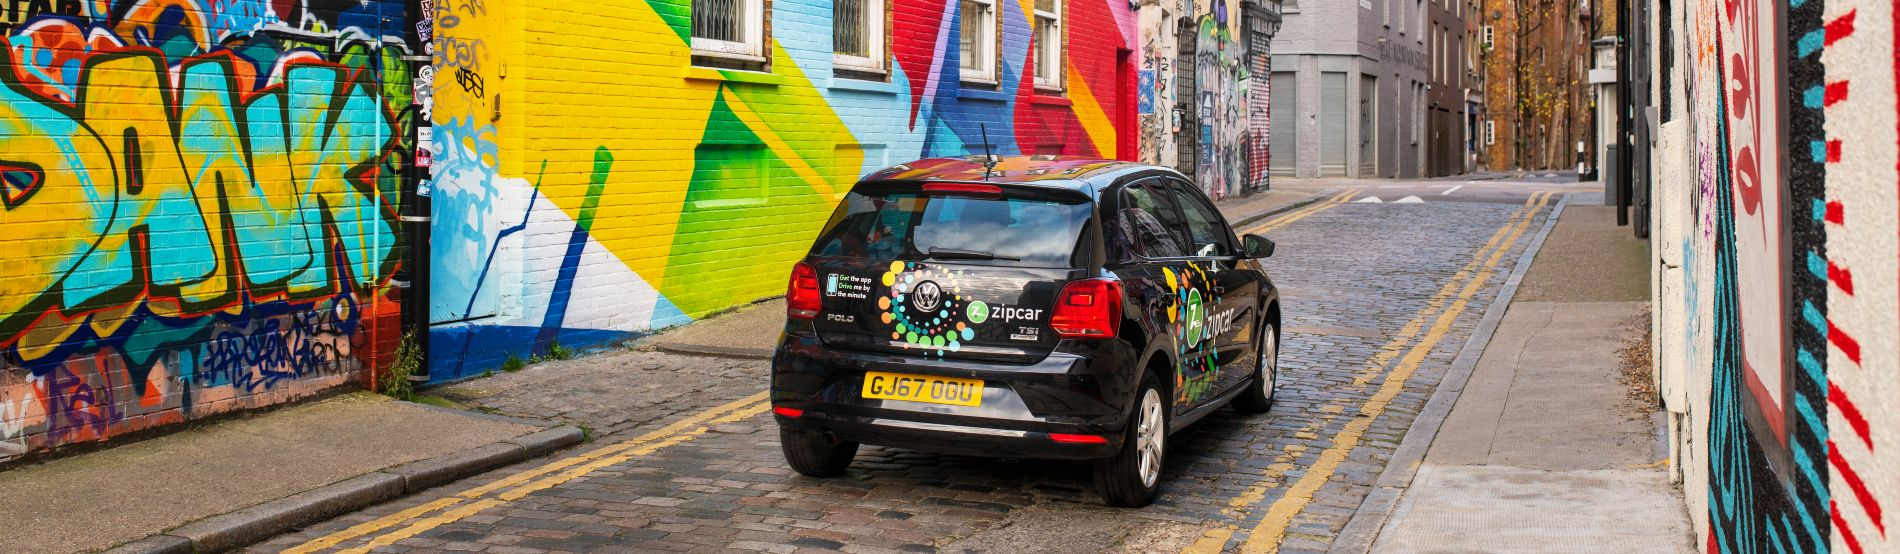 zipcar on a graffiti covered street in east london